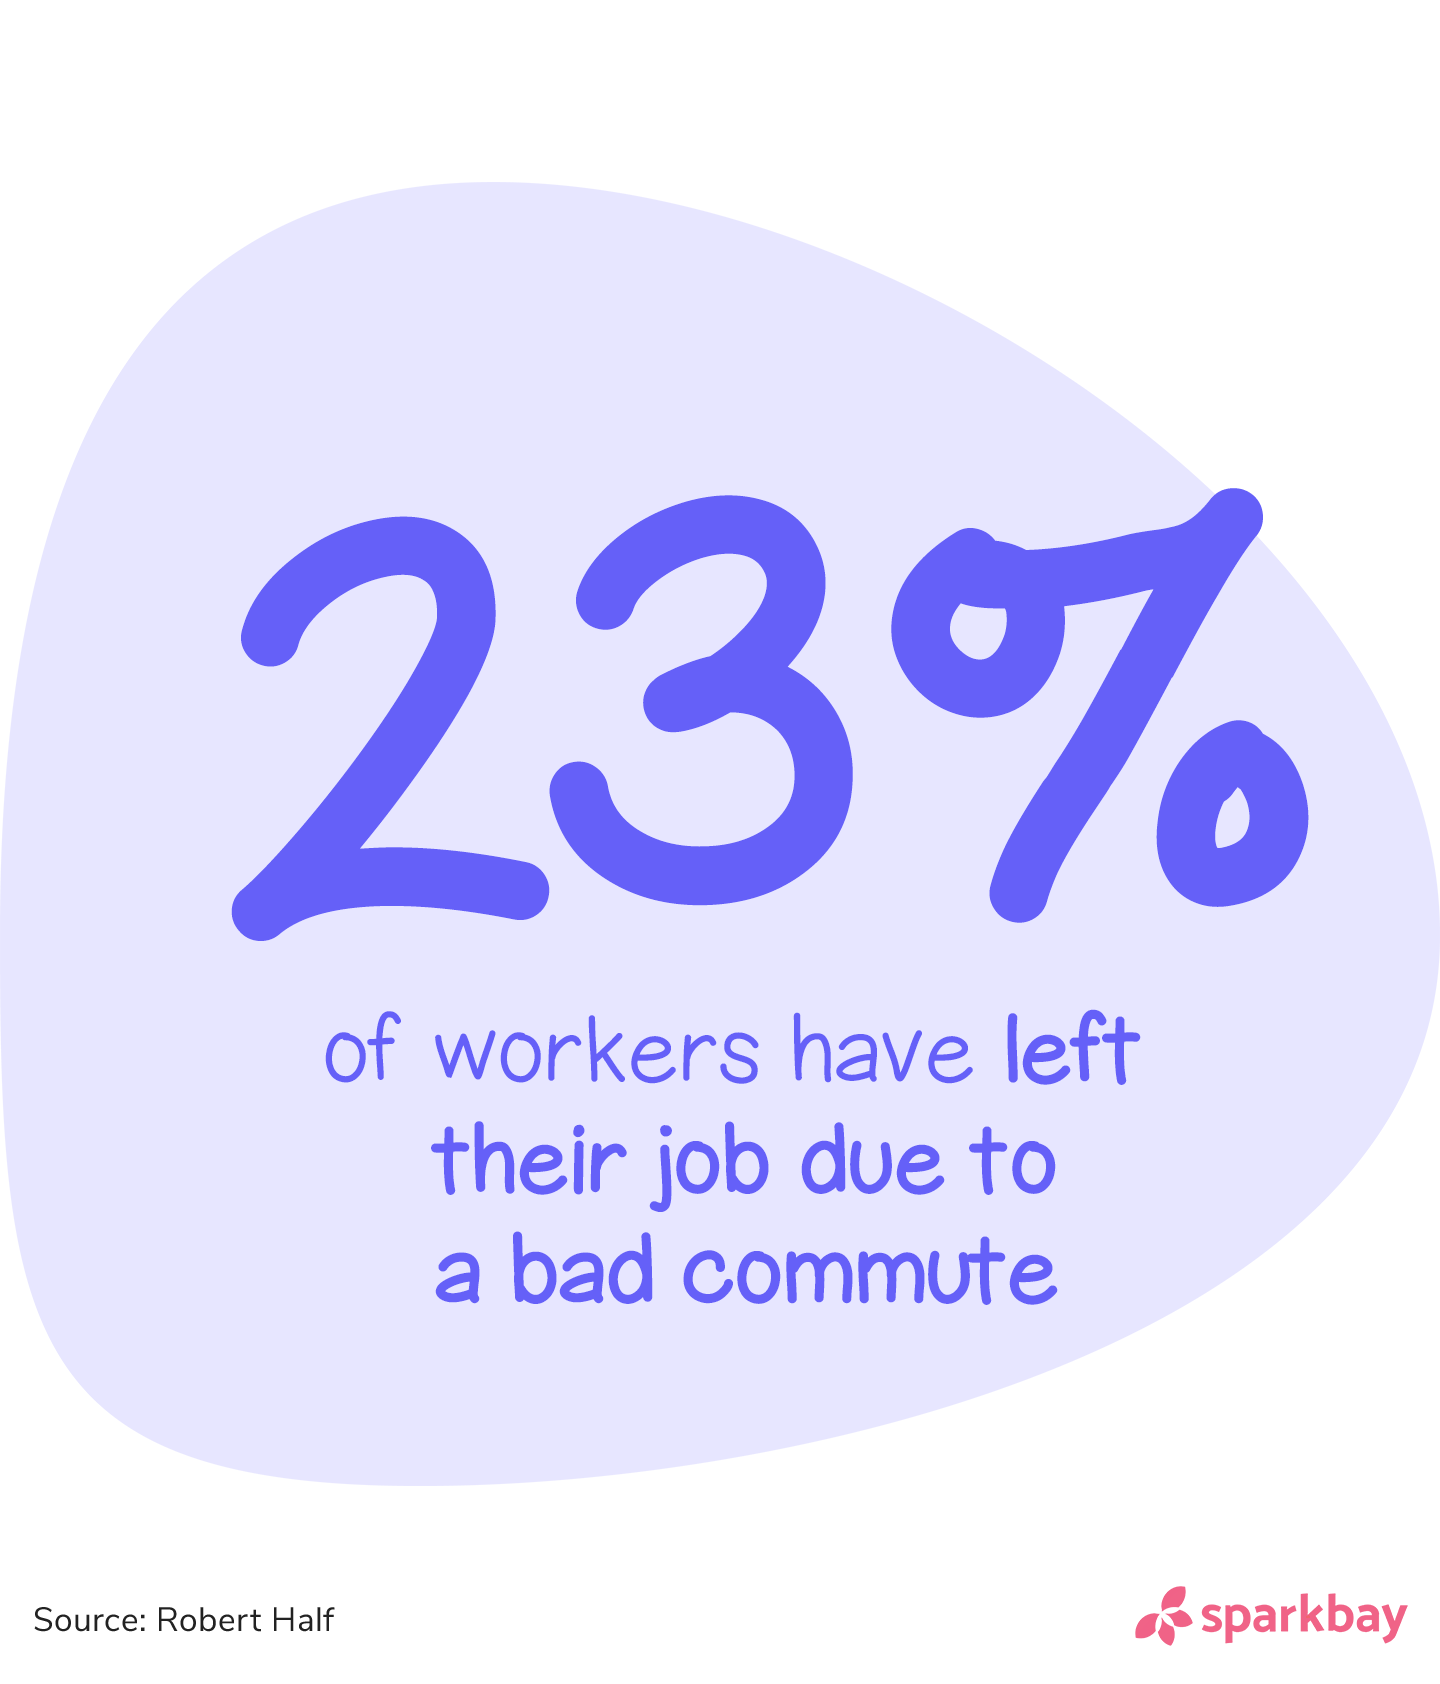 Employee turnover statistics: 23% of workers have left their job due to a bad commute.'